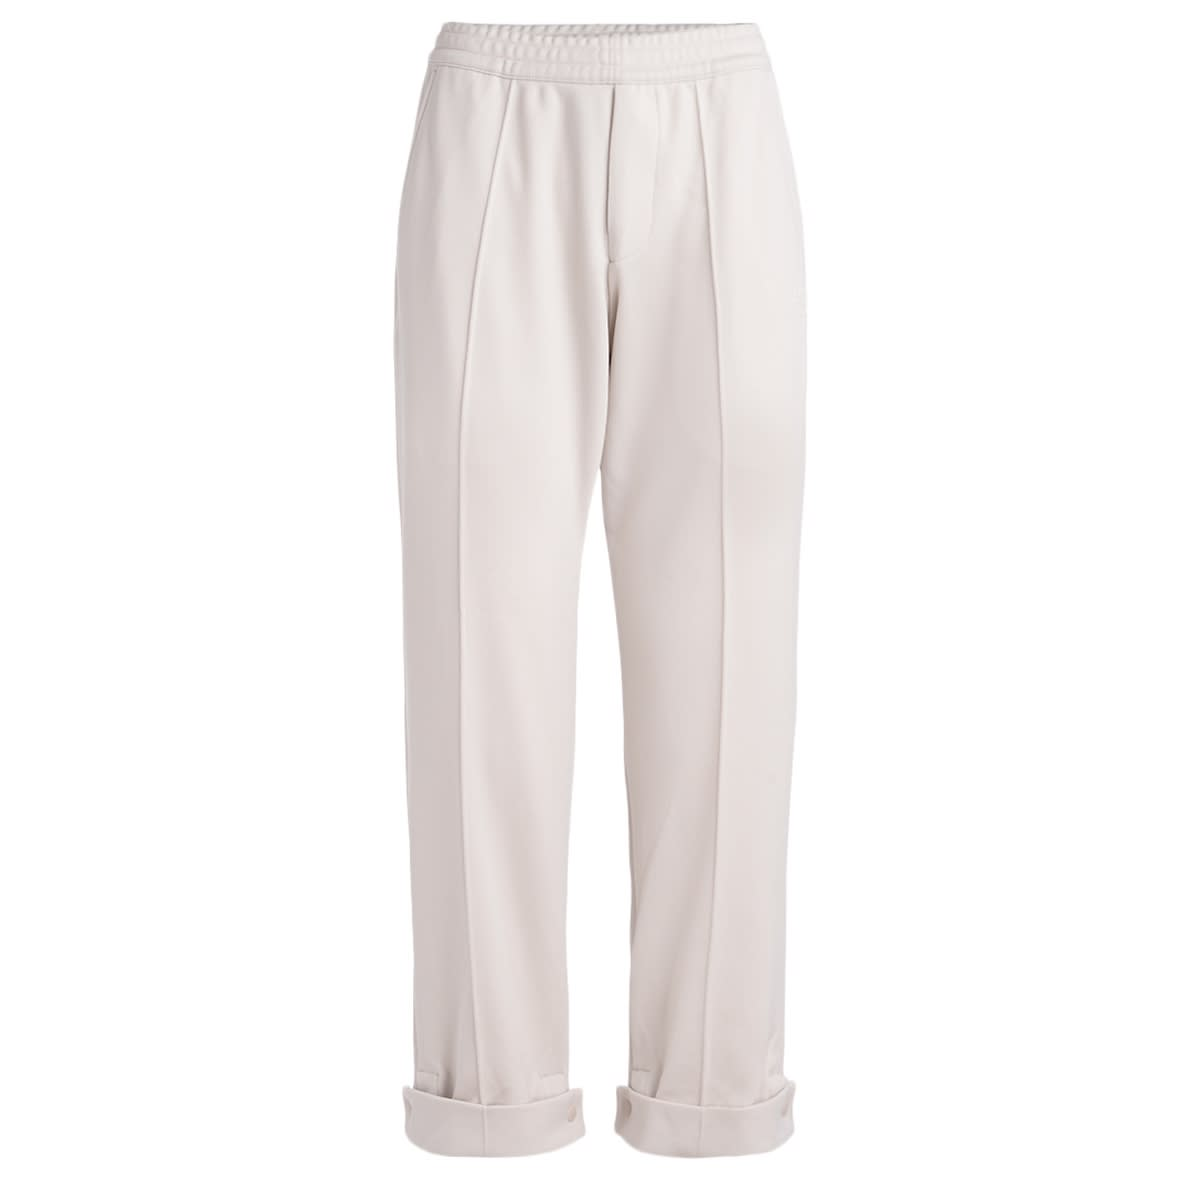 Y3 Sports Trousers In Ecru Color In Fabric